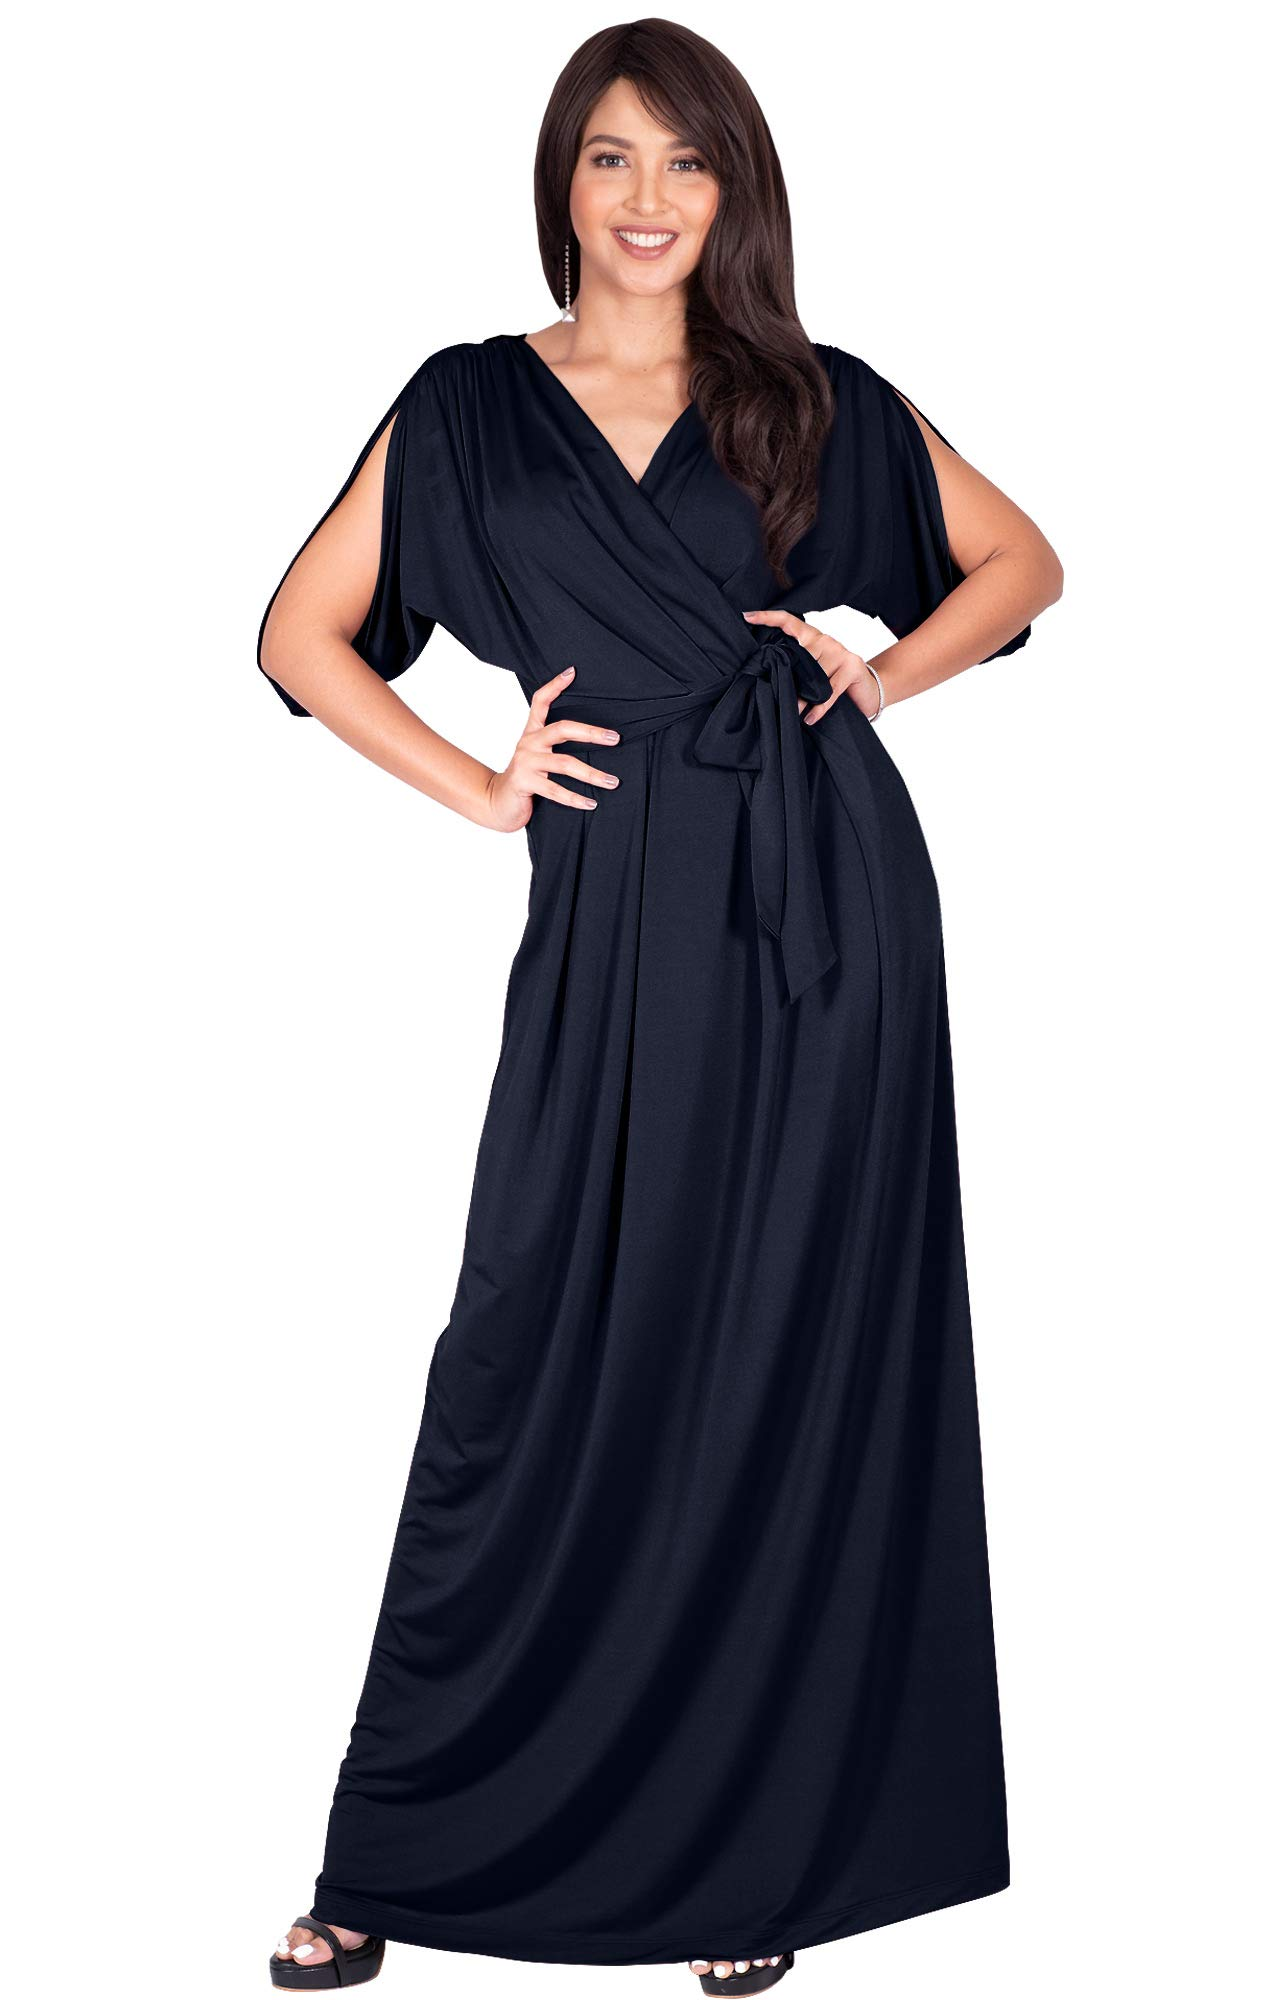 KOH KOH Plus Size Womens Long Semi-Formal Short Sleeve V-Neck Full Floor Length V-Neck Flowy Cocktail Wedding Guest Party Bridesmaid Maxi Dress Dresses Gown Gowns, Dark Navy Blue 3XL 22-24